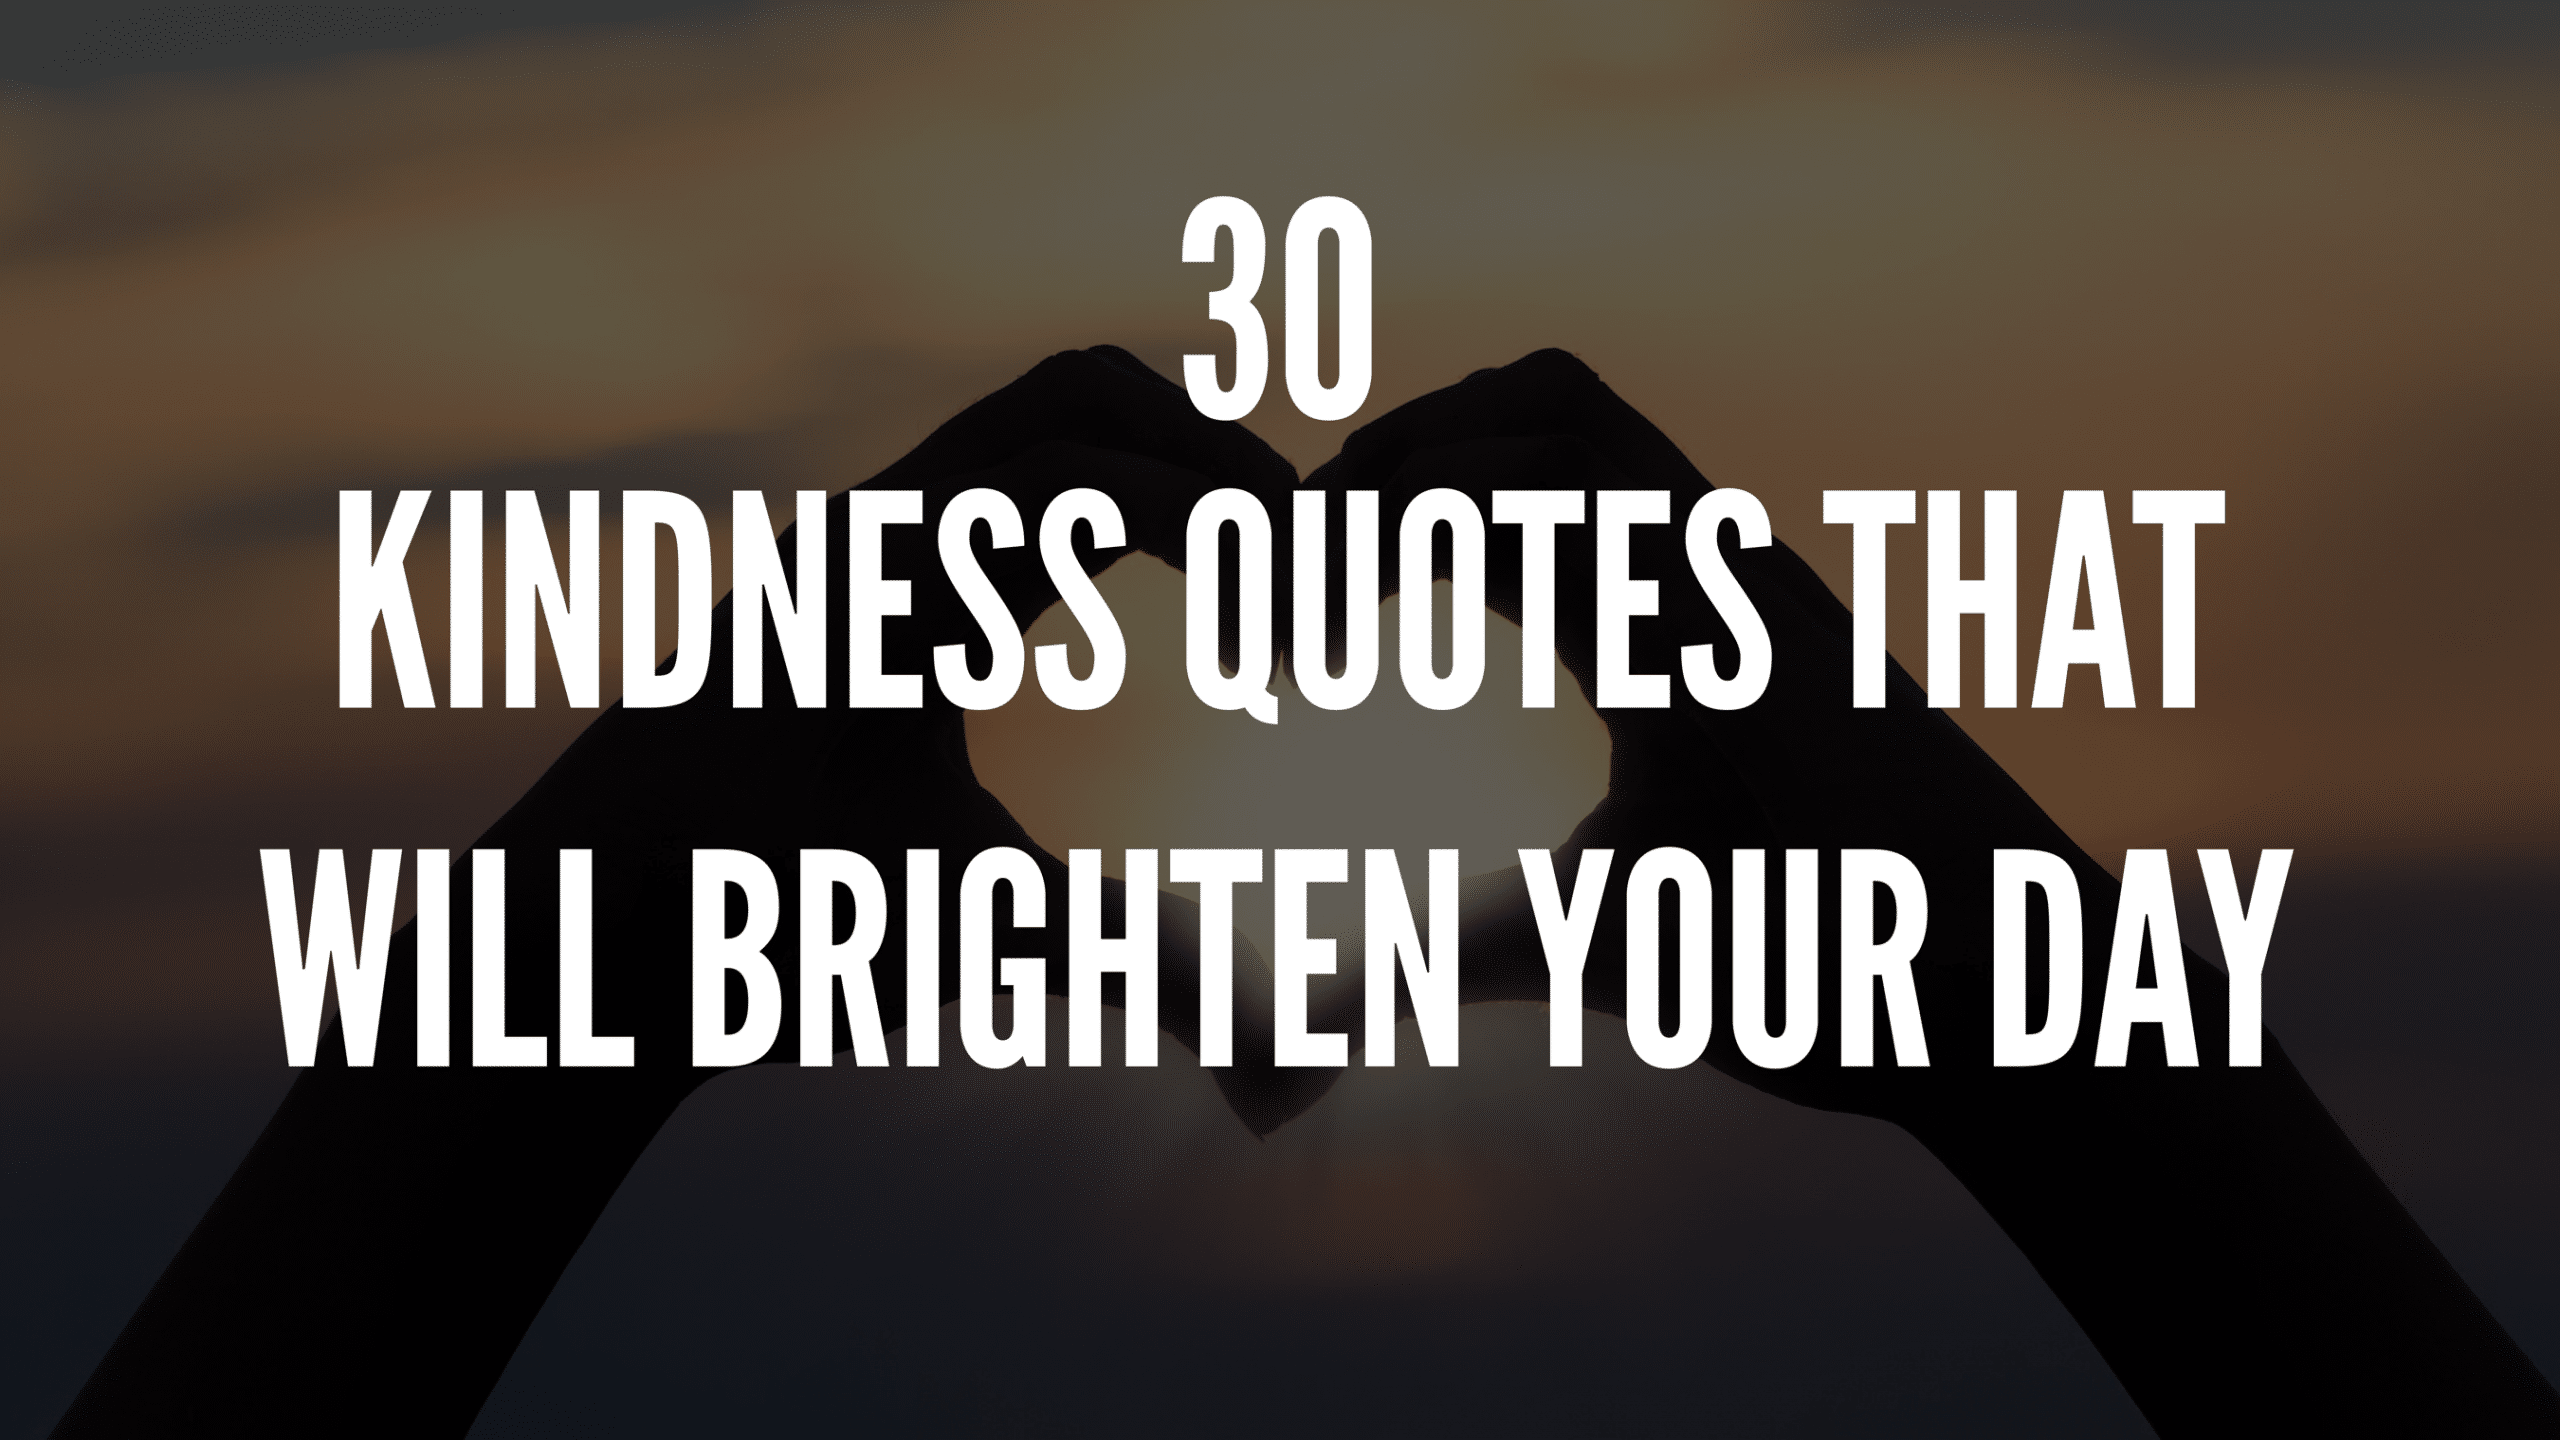 30 Kindness Quotes That Will Brighten Your Day